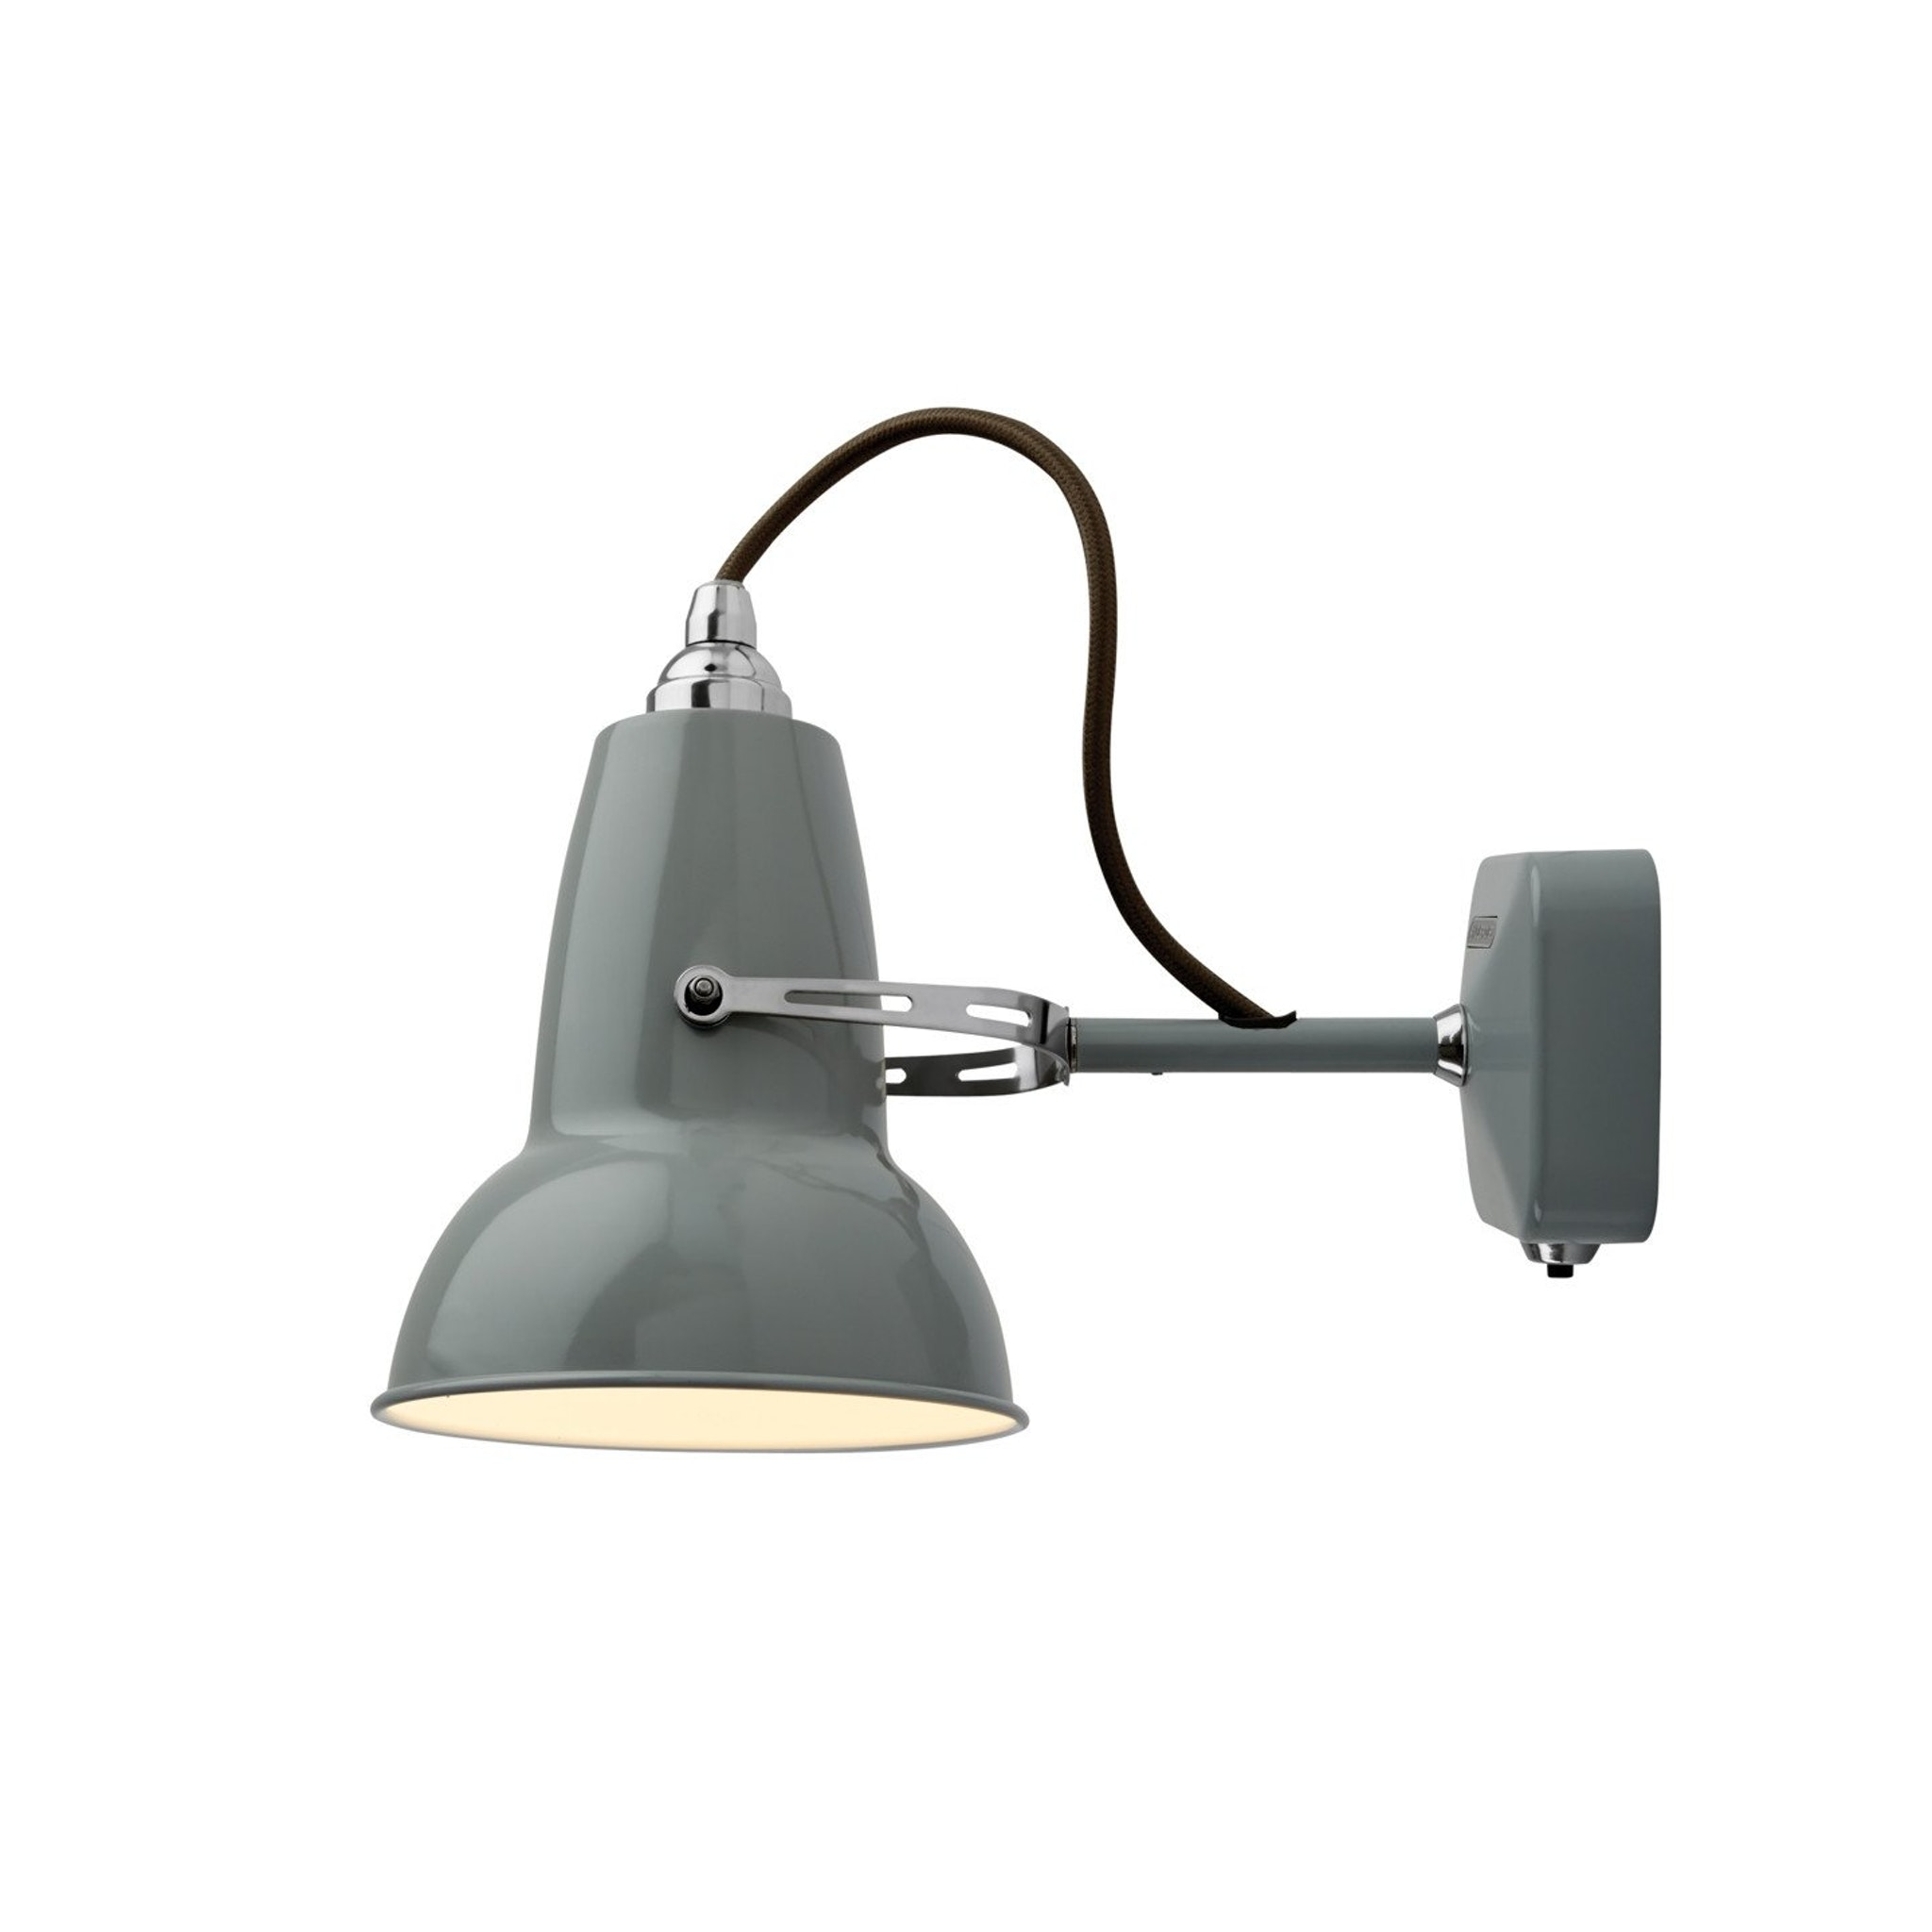 Original 1227 Mini Wall Light by Anglepoise